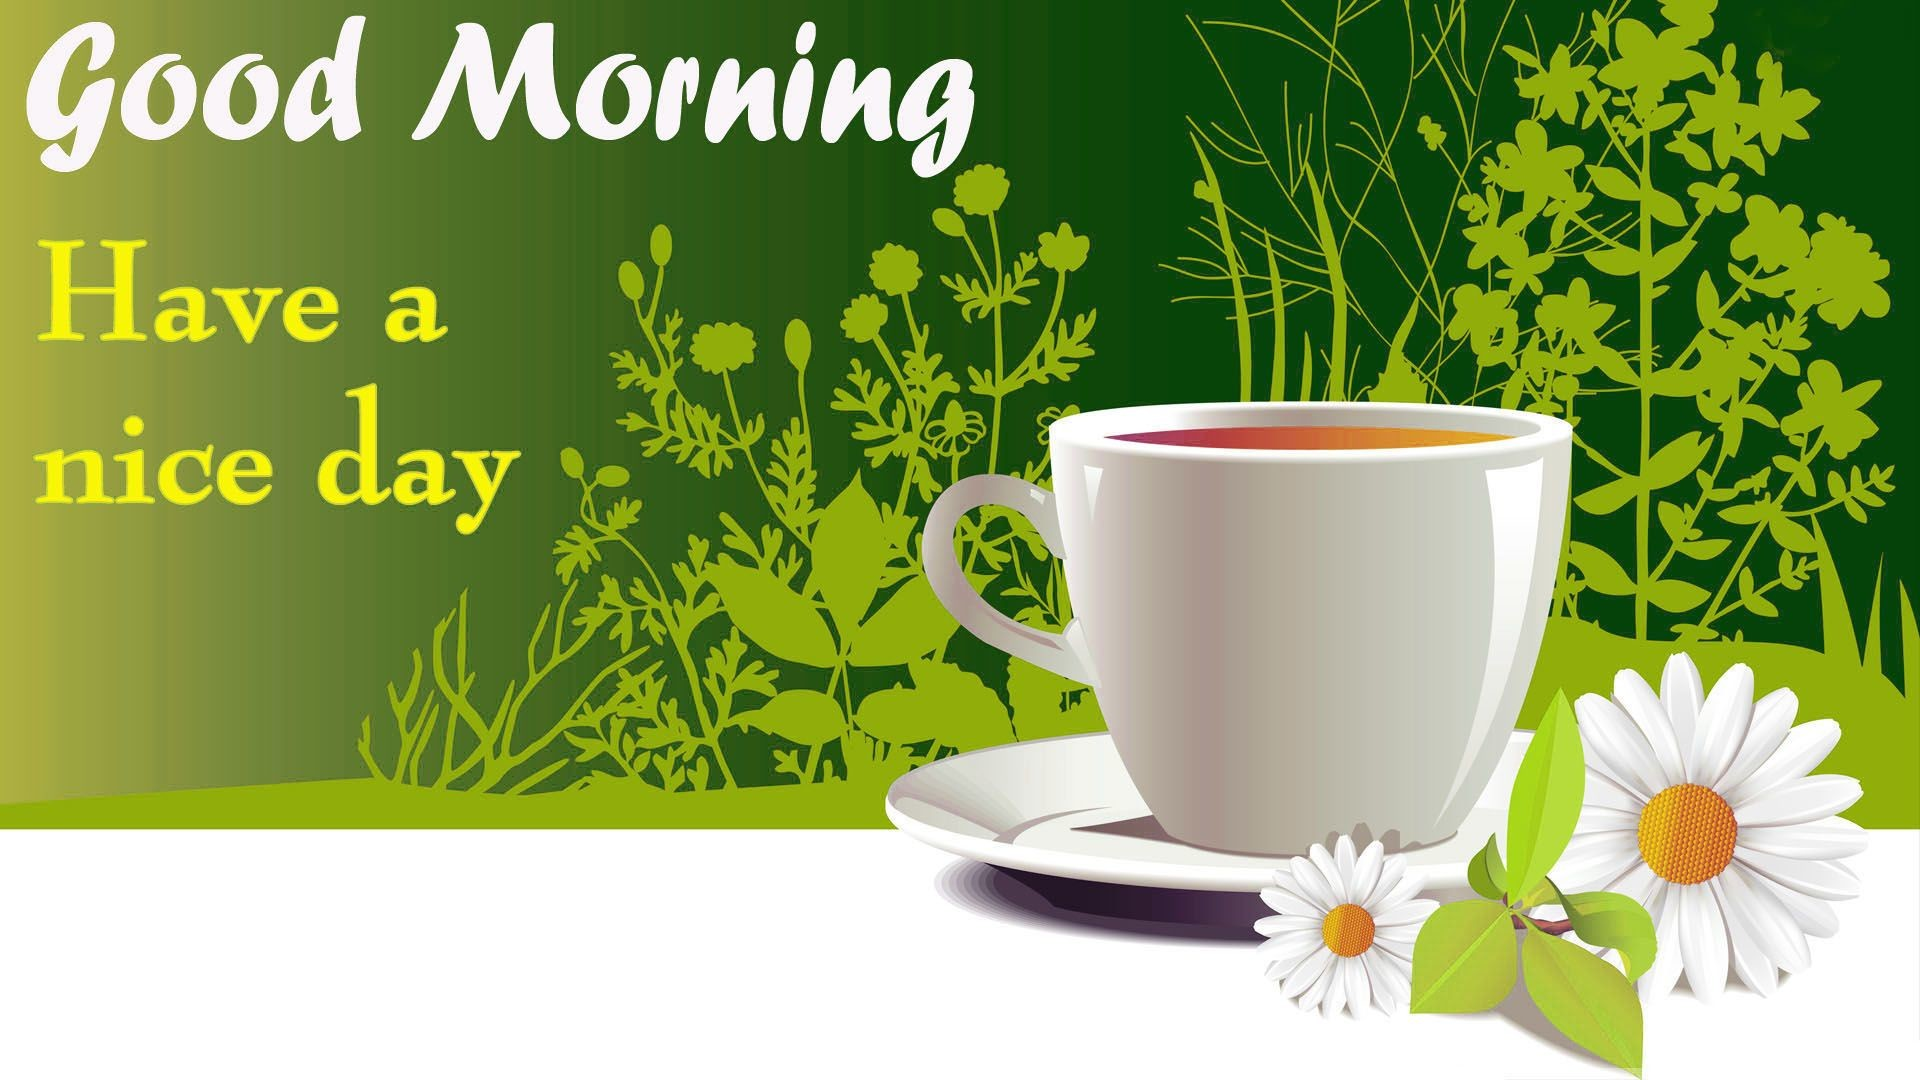 Wallpapers For Good Morning – Wallpaper Cave